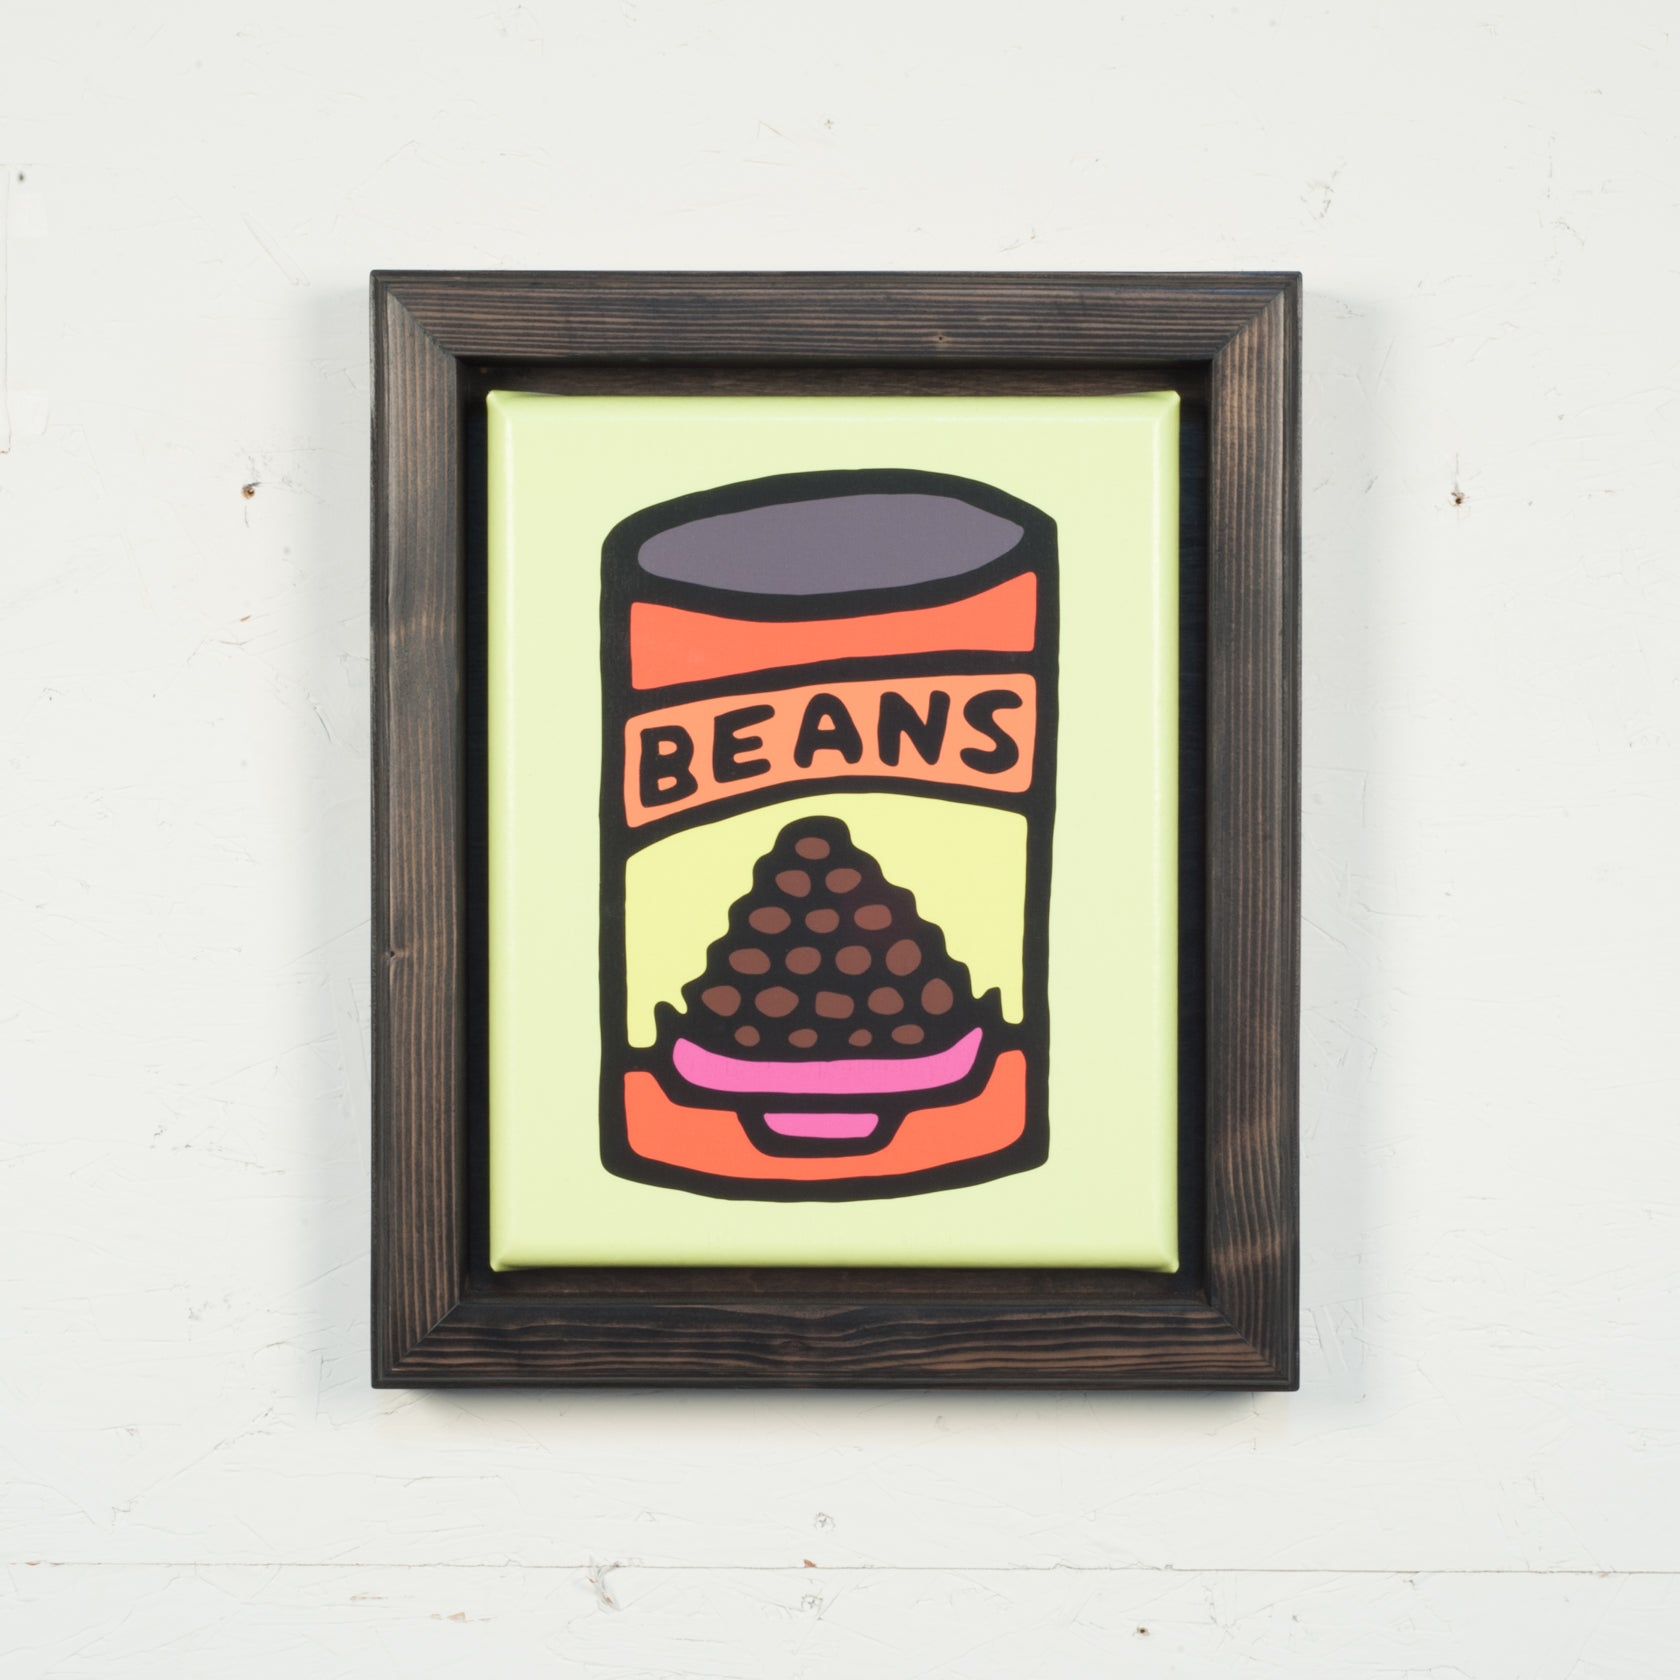 Print On Canvas - Beans (Yellow) - 11x14 inches